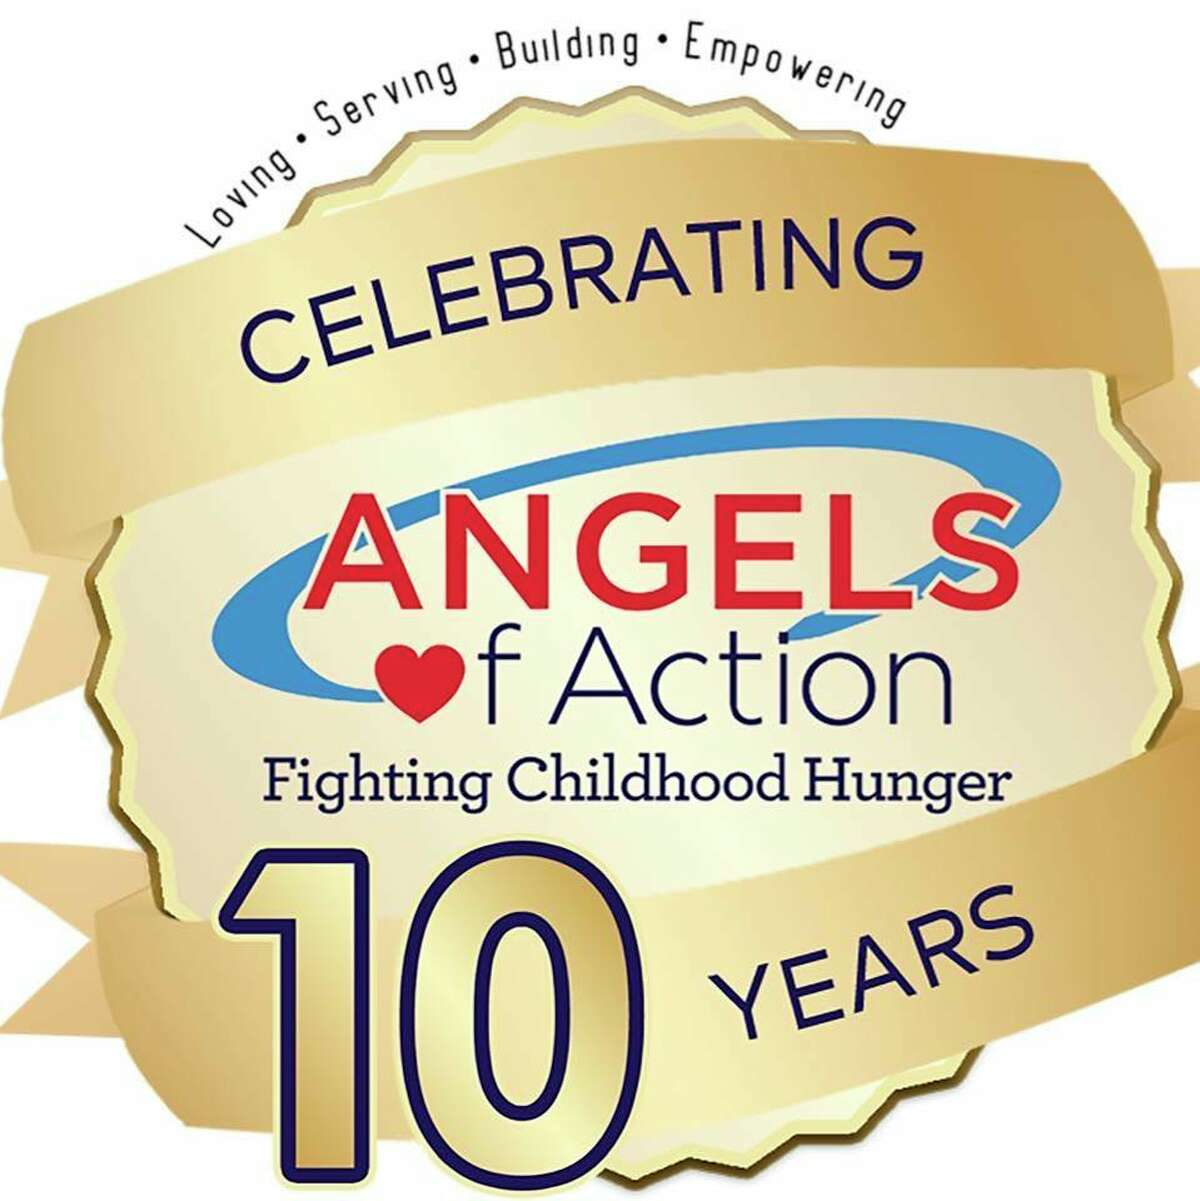 Angels of Action, a nonprofit organization working to improve the lives of children and families in the Mecosta and Osceola Counties is celebrating its 10th Anniversary on Sunday, Sept. 12. (Courtesy/Angels of Action)